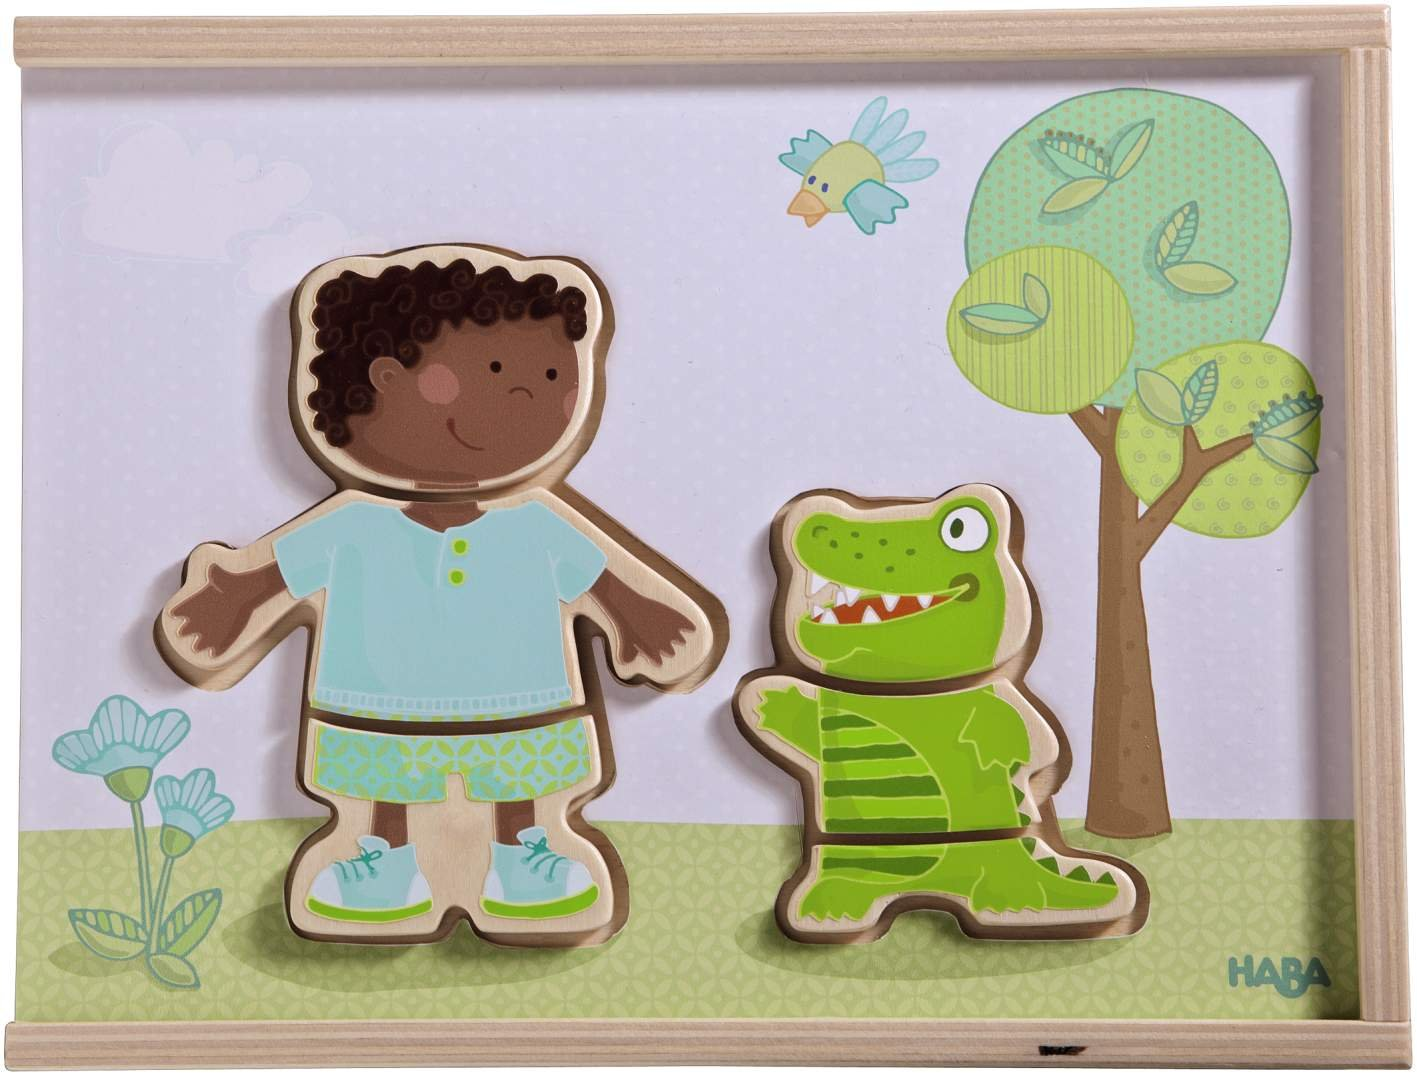 HABA Children of the World - 36 Piece Mix and Match Multi-Cultural Puzzle with Wooden Storage Box by HABA (Image #3)